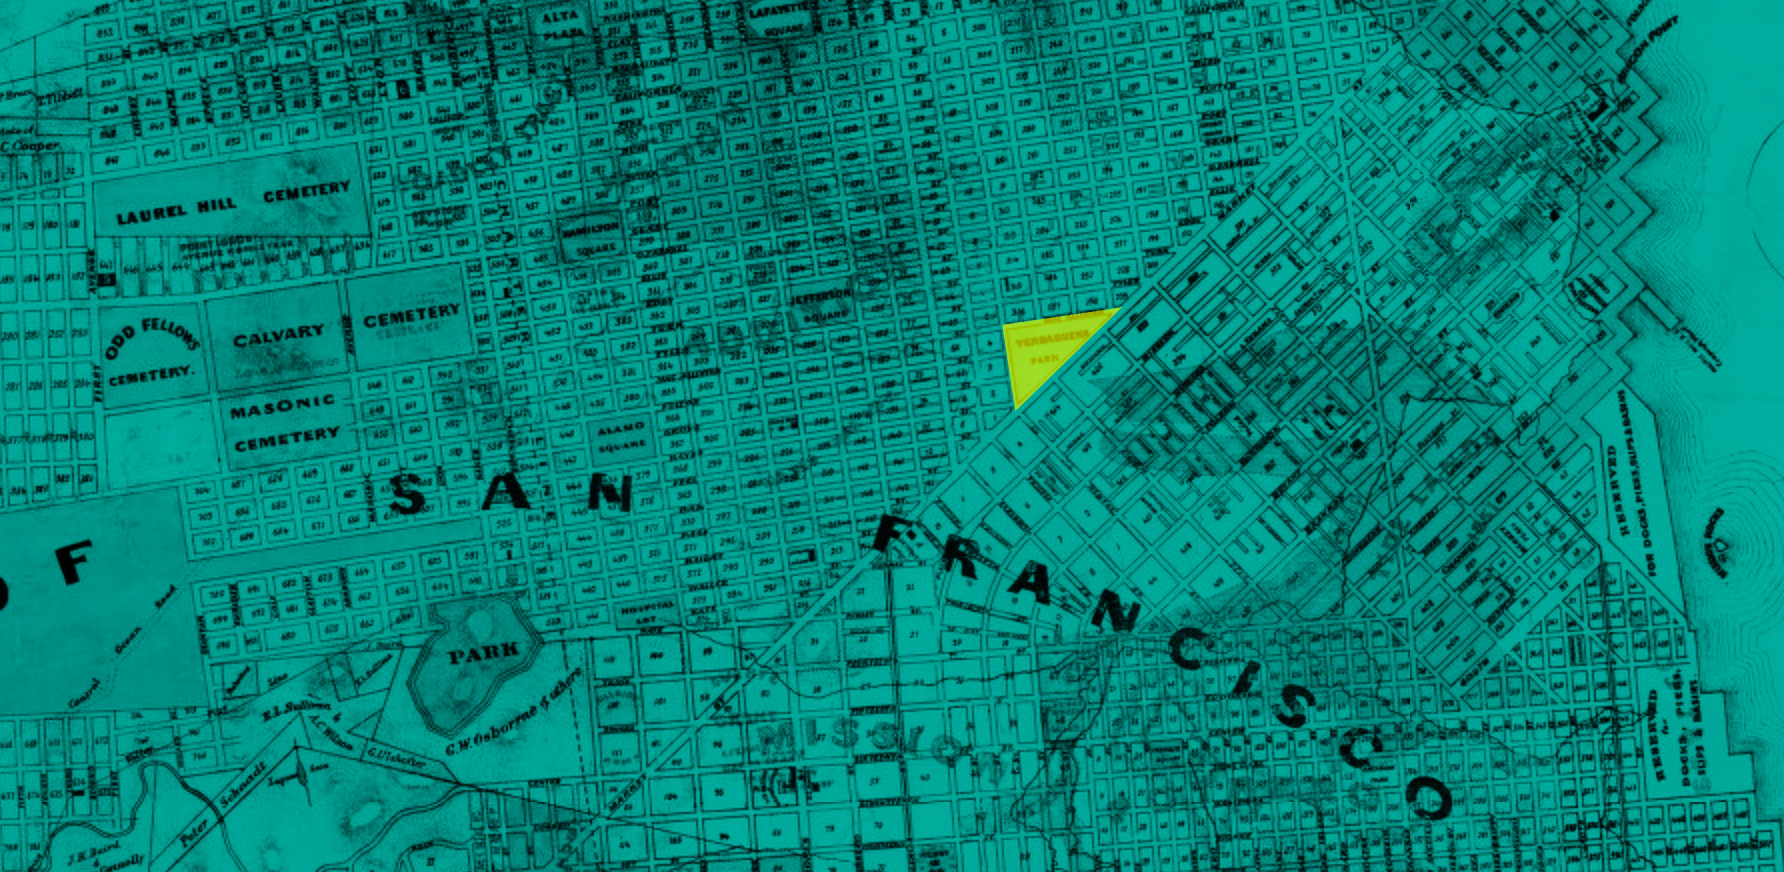 A detail map of 1869 San Francisco. The area of Yerba Buena Cemetery is highlighted in the area that is now Civic Center.